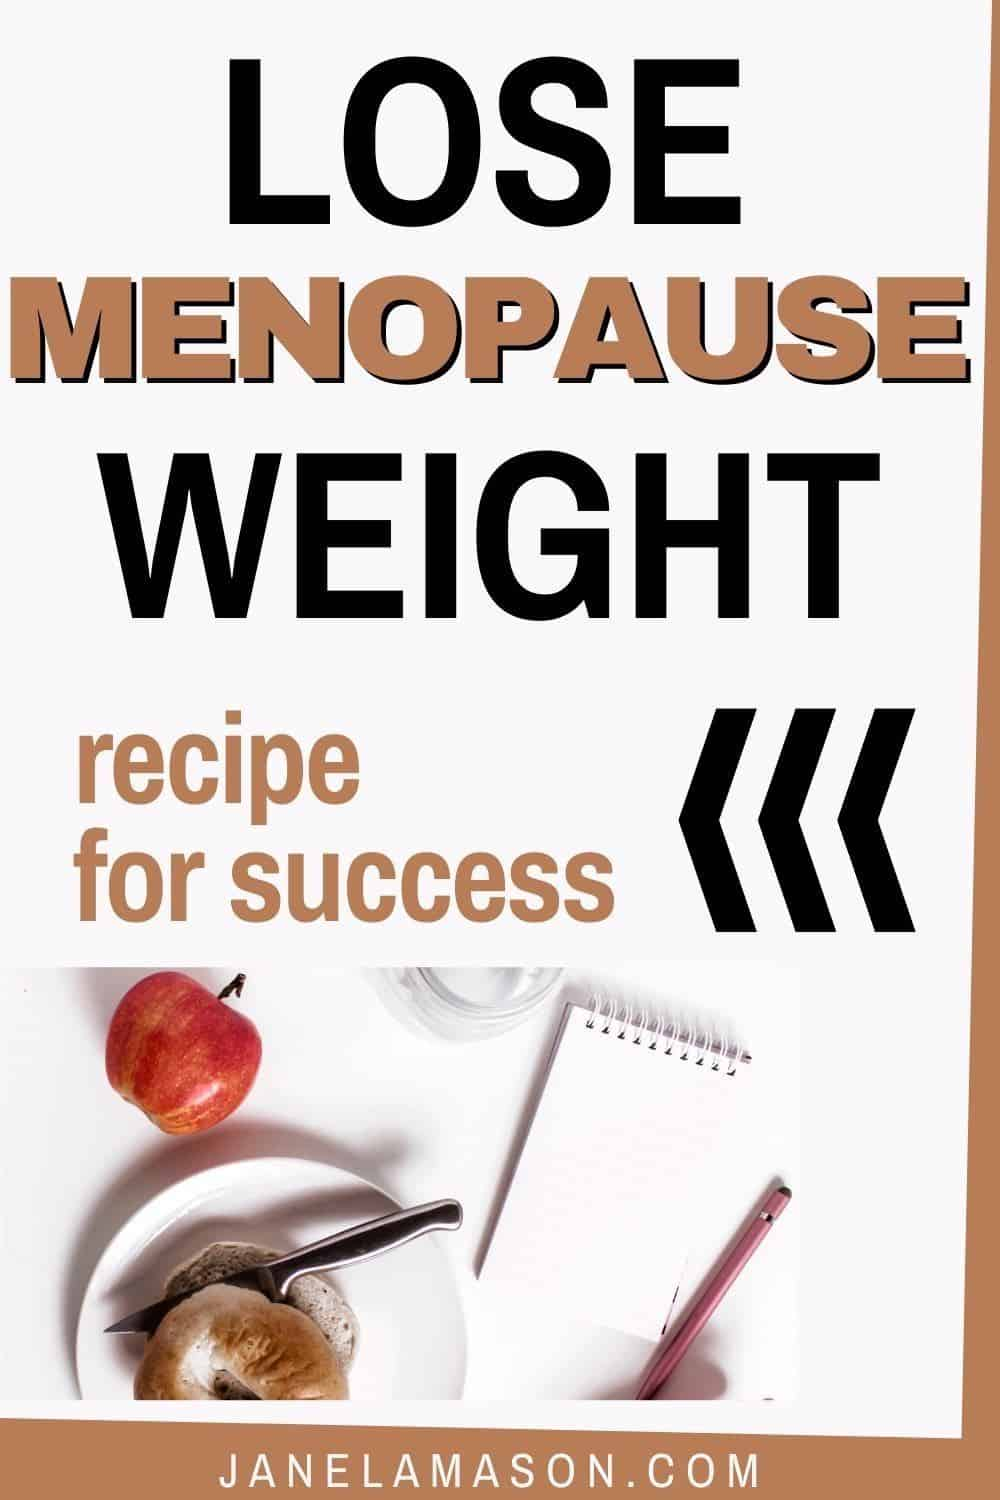 How to Lose the weight you gain in menopause